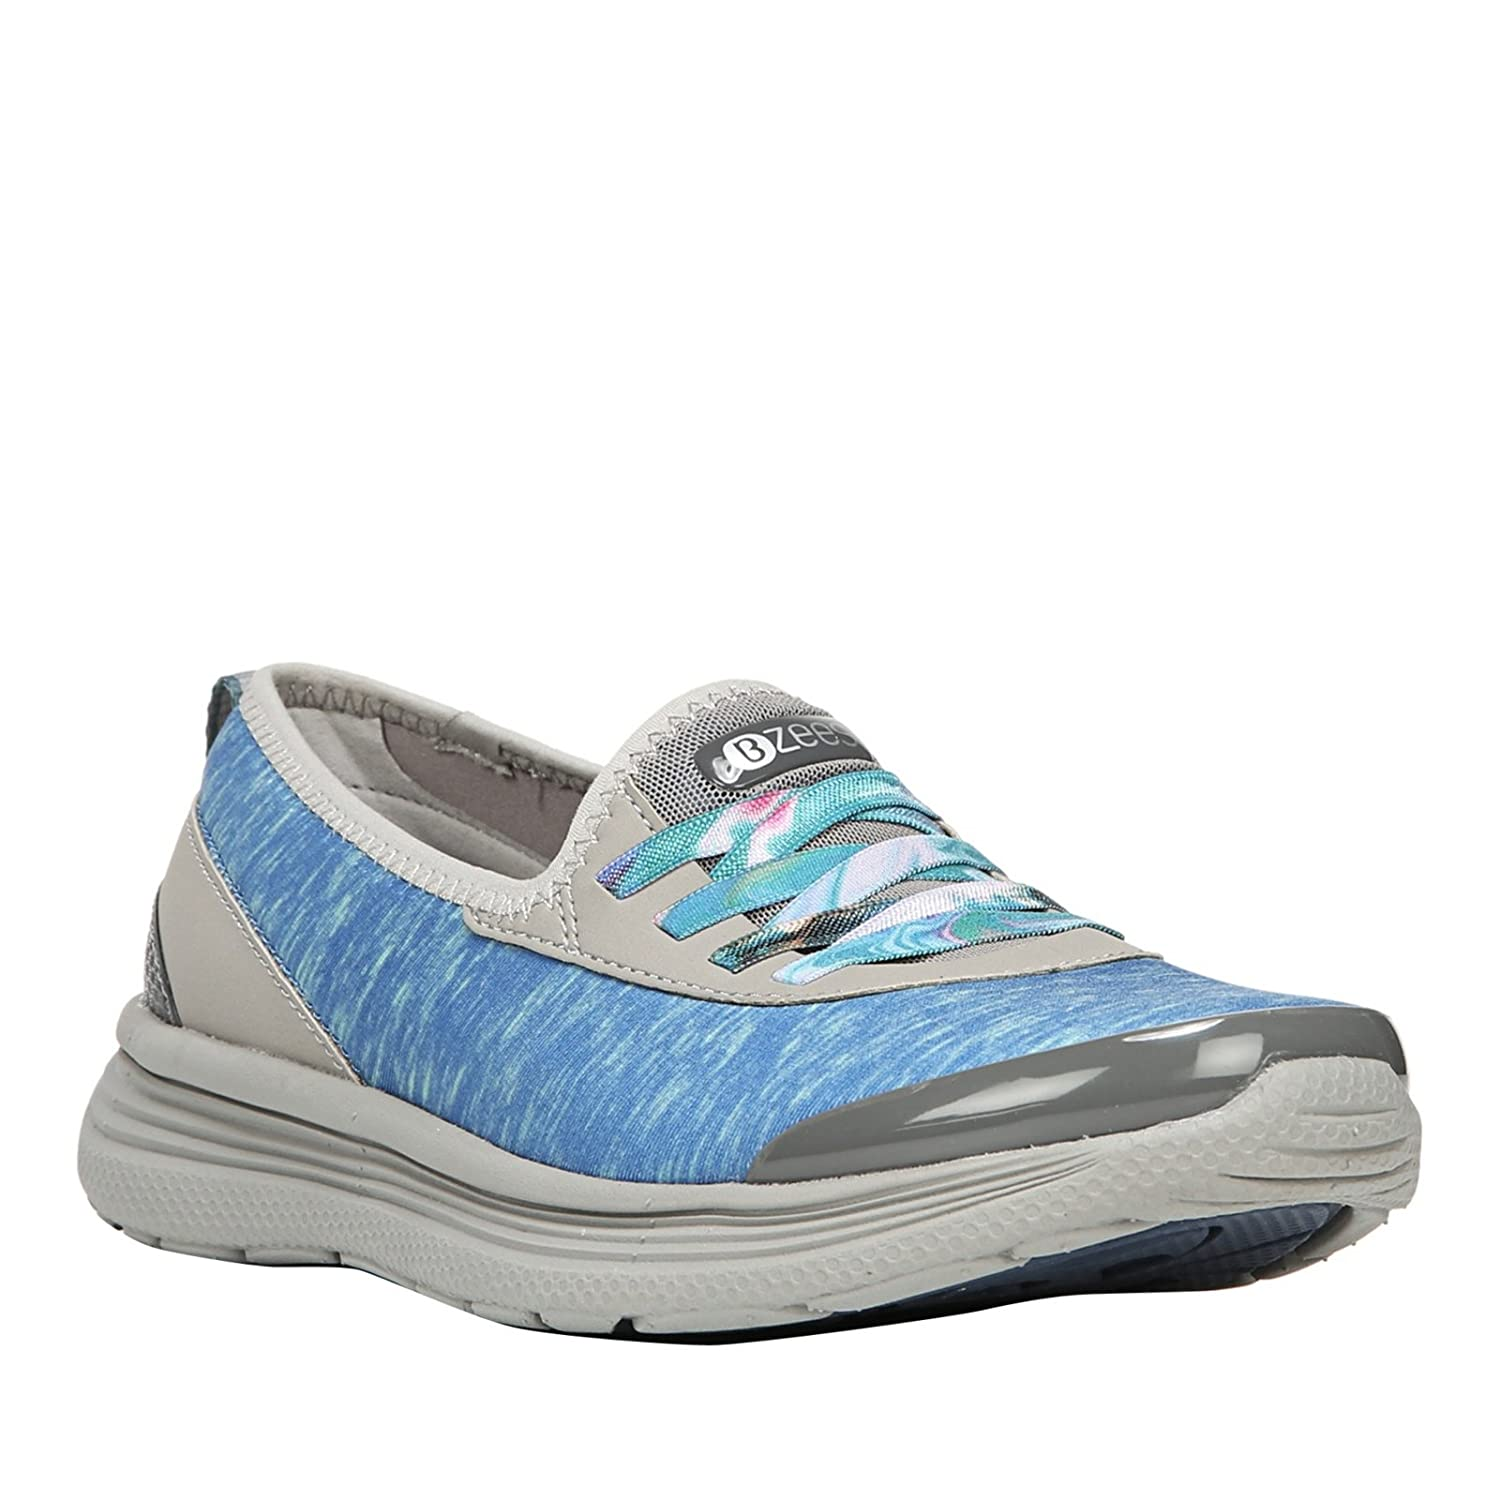 BZees Womens Wink Lightweight Water Resistant Casual Shoes B01DPACF9K 6.5 B(M) US|Blue